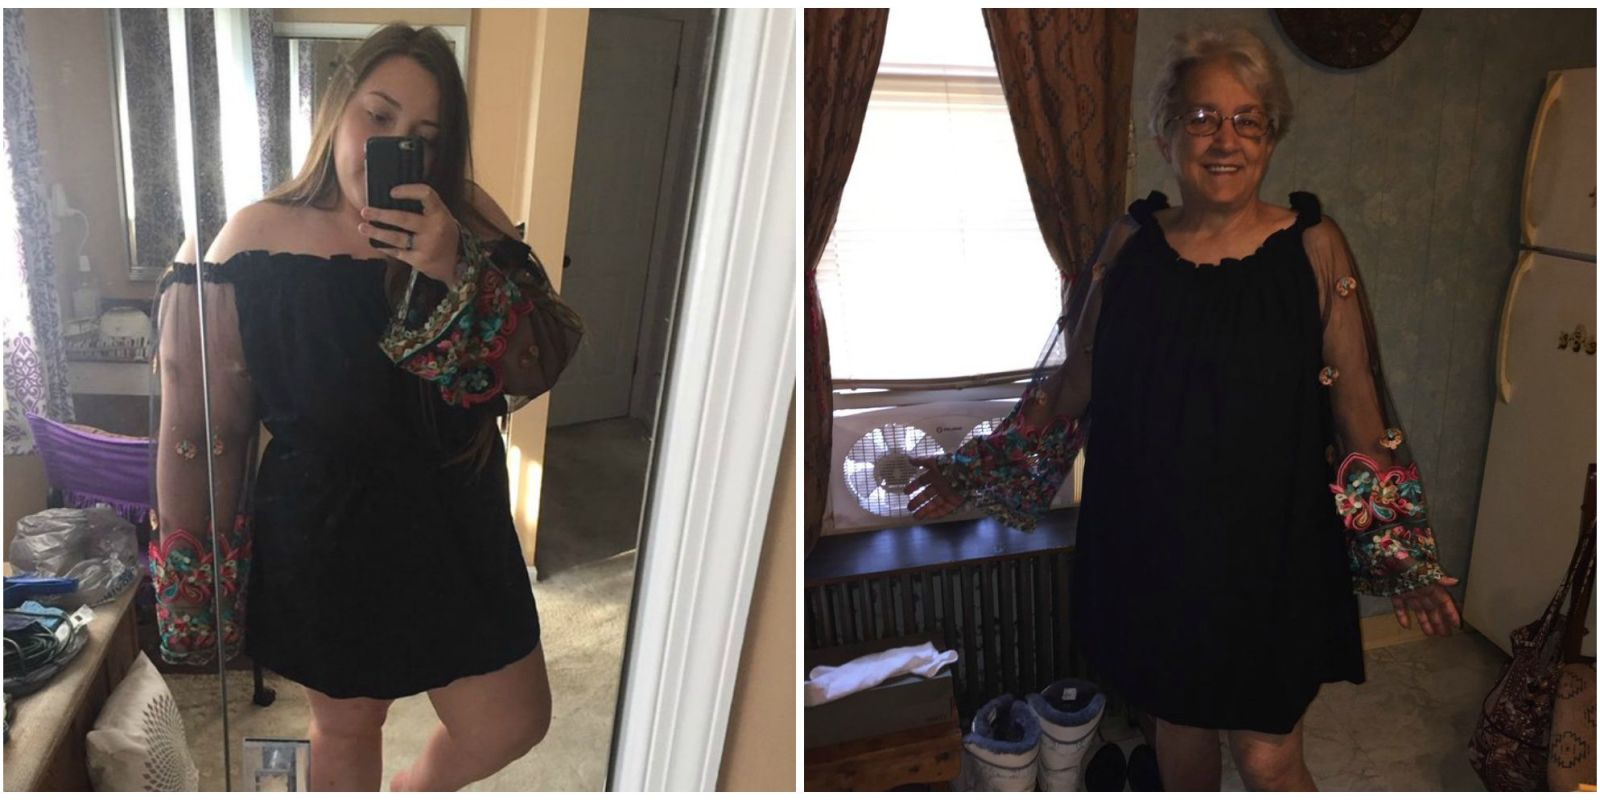 This Grandma Bought the Same Dress As Her Teenage Granddaughter for a Wedding